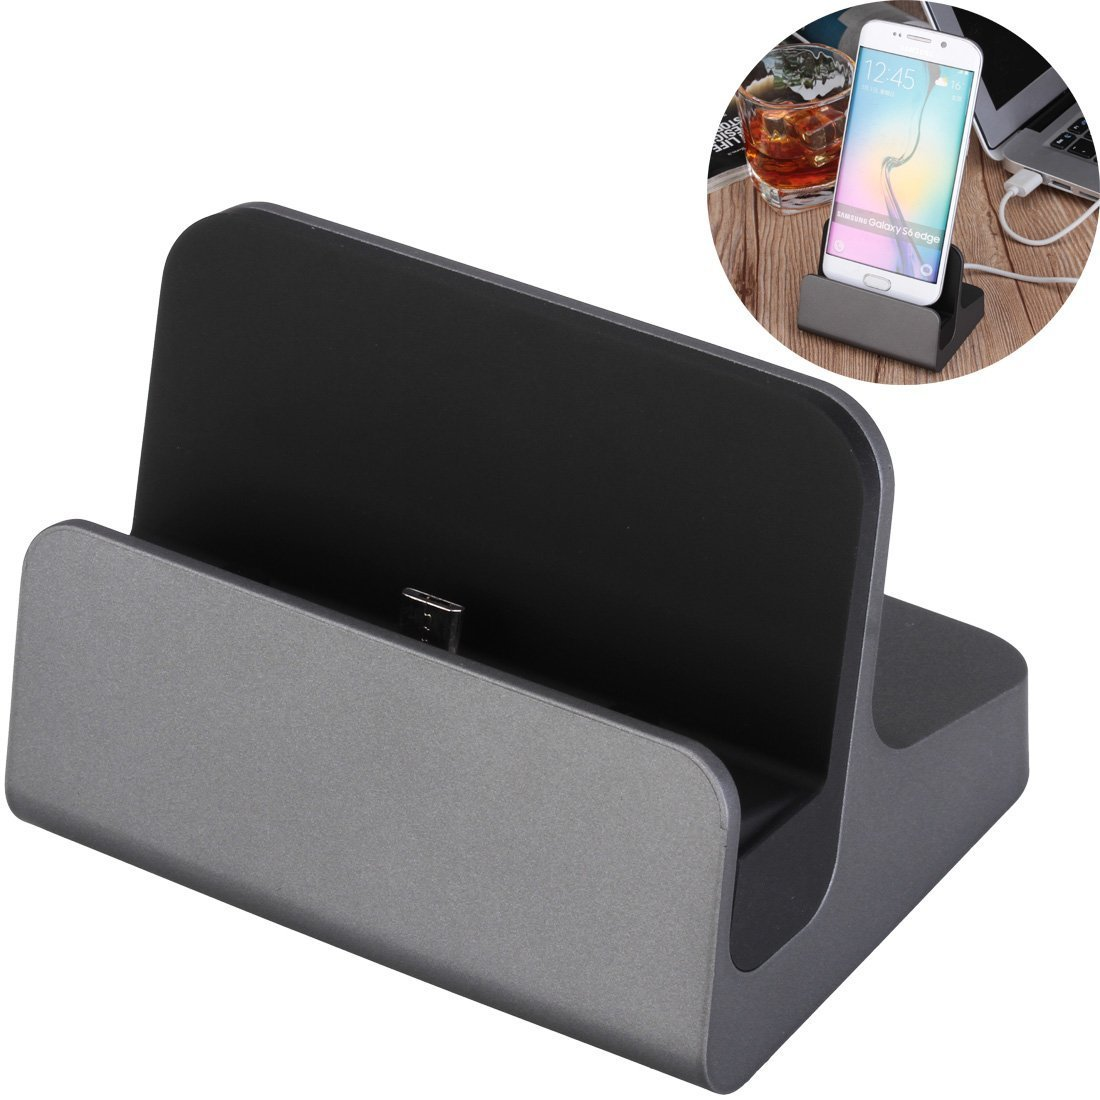 Micro USB Charge Dock Cradle - Rerii Desktop 5-Pin Micro USB Charge Dock Cradle, Charging and Date Transferring, Come with Micro USB Cable for Samsung Mobile Phones